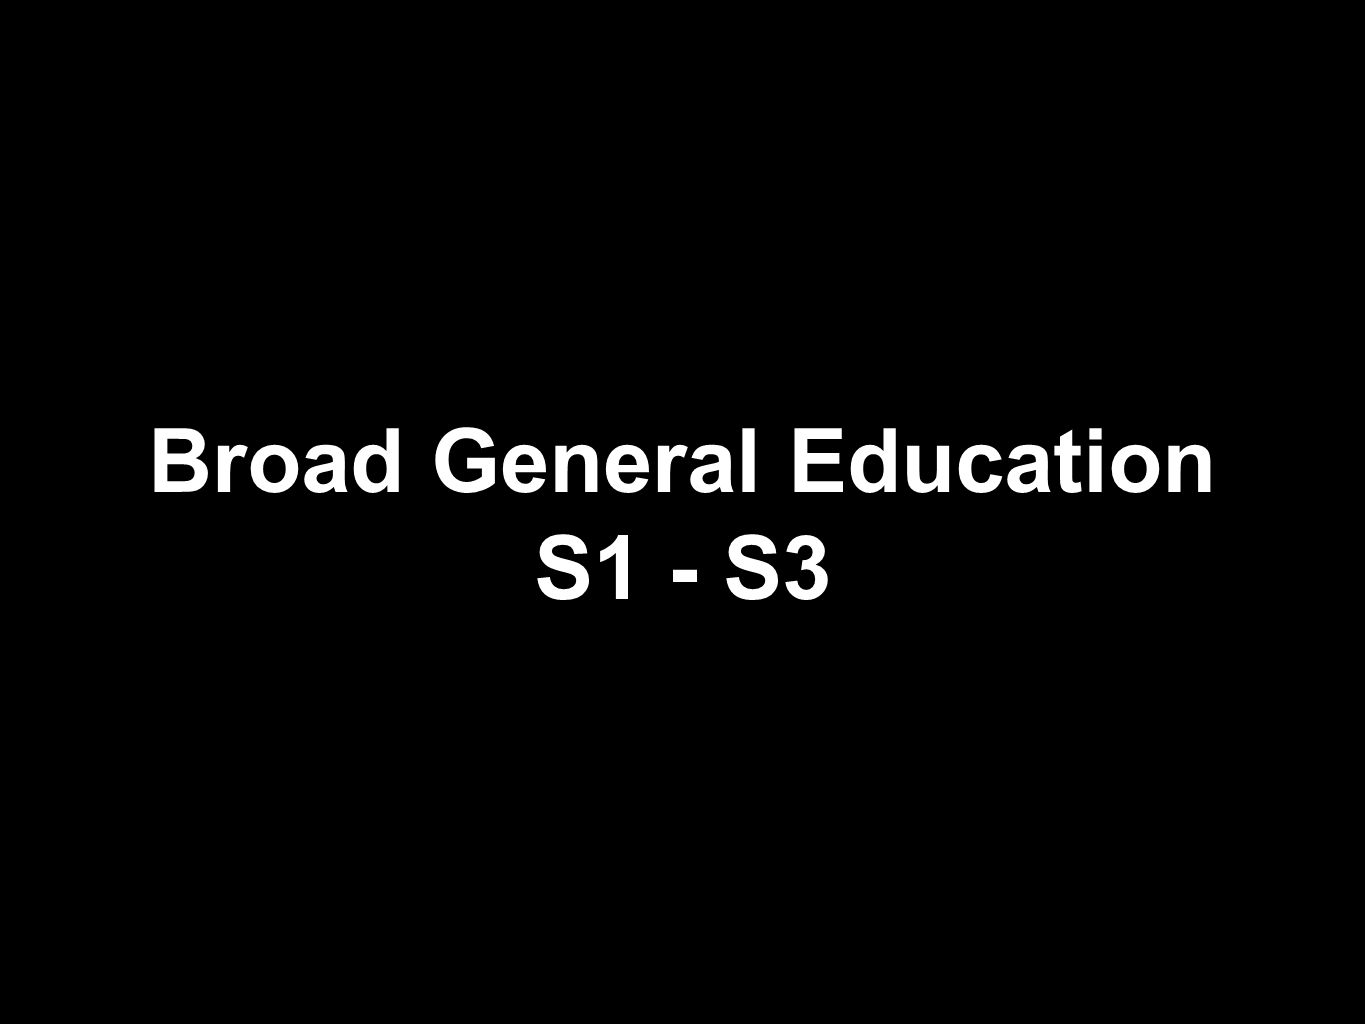 Broad General Education S1 - S3